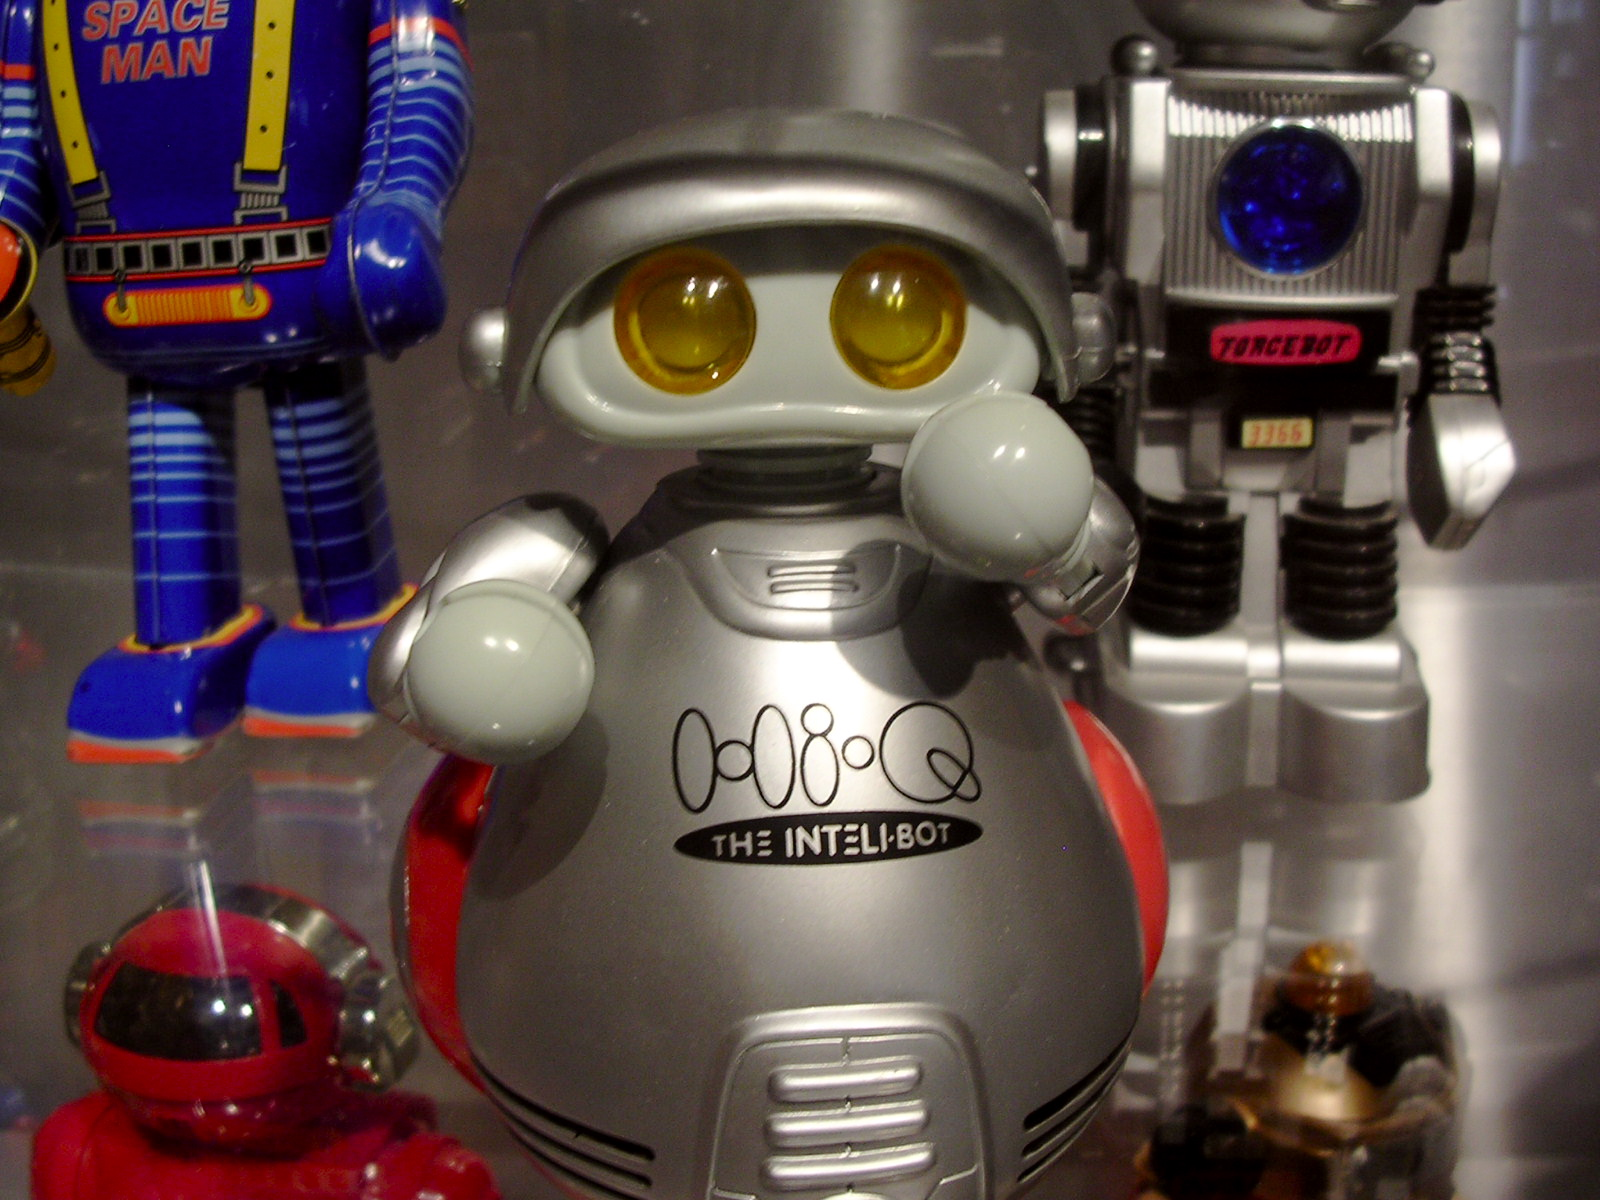 File:Robot At The Museum Of Science And Technology